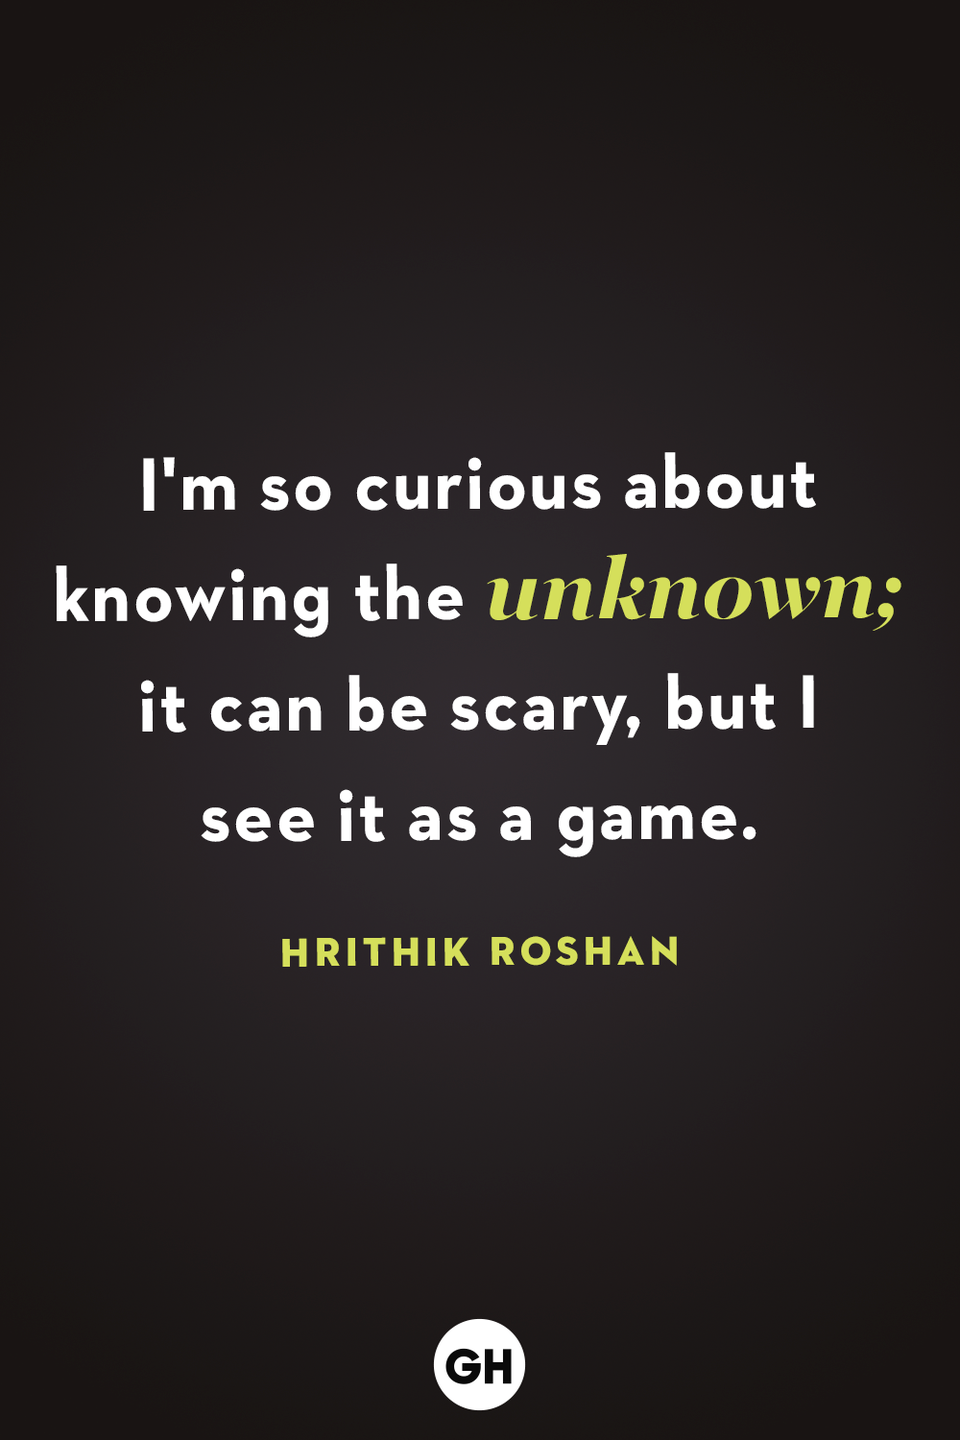 <p>I'm so curious about knowing the unknown; it can be scary, but I see it as a game.</p>